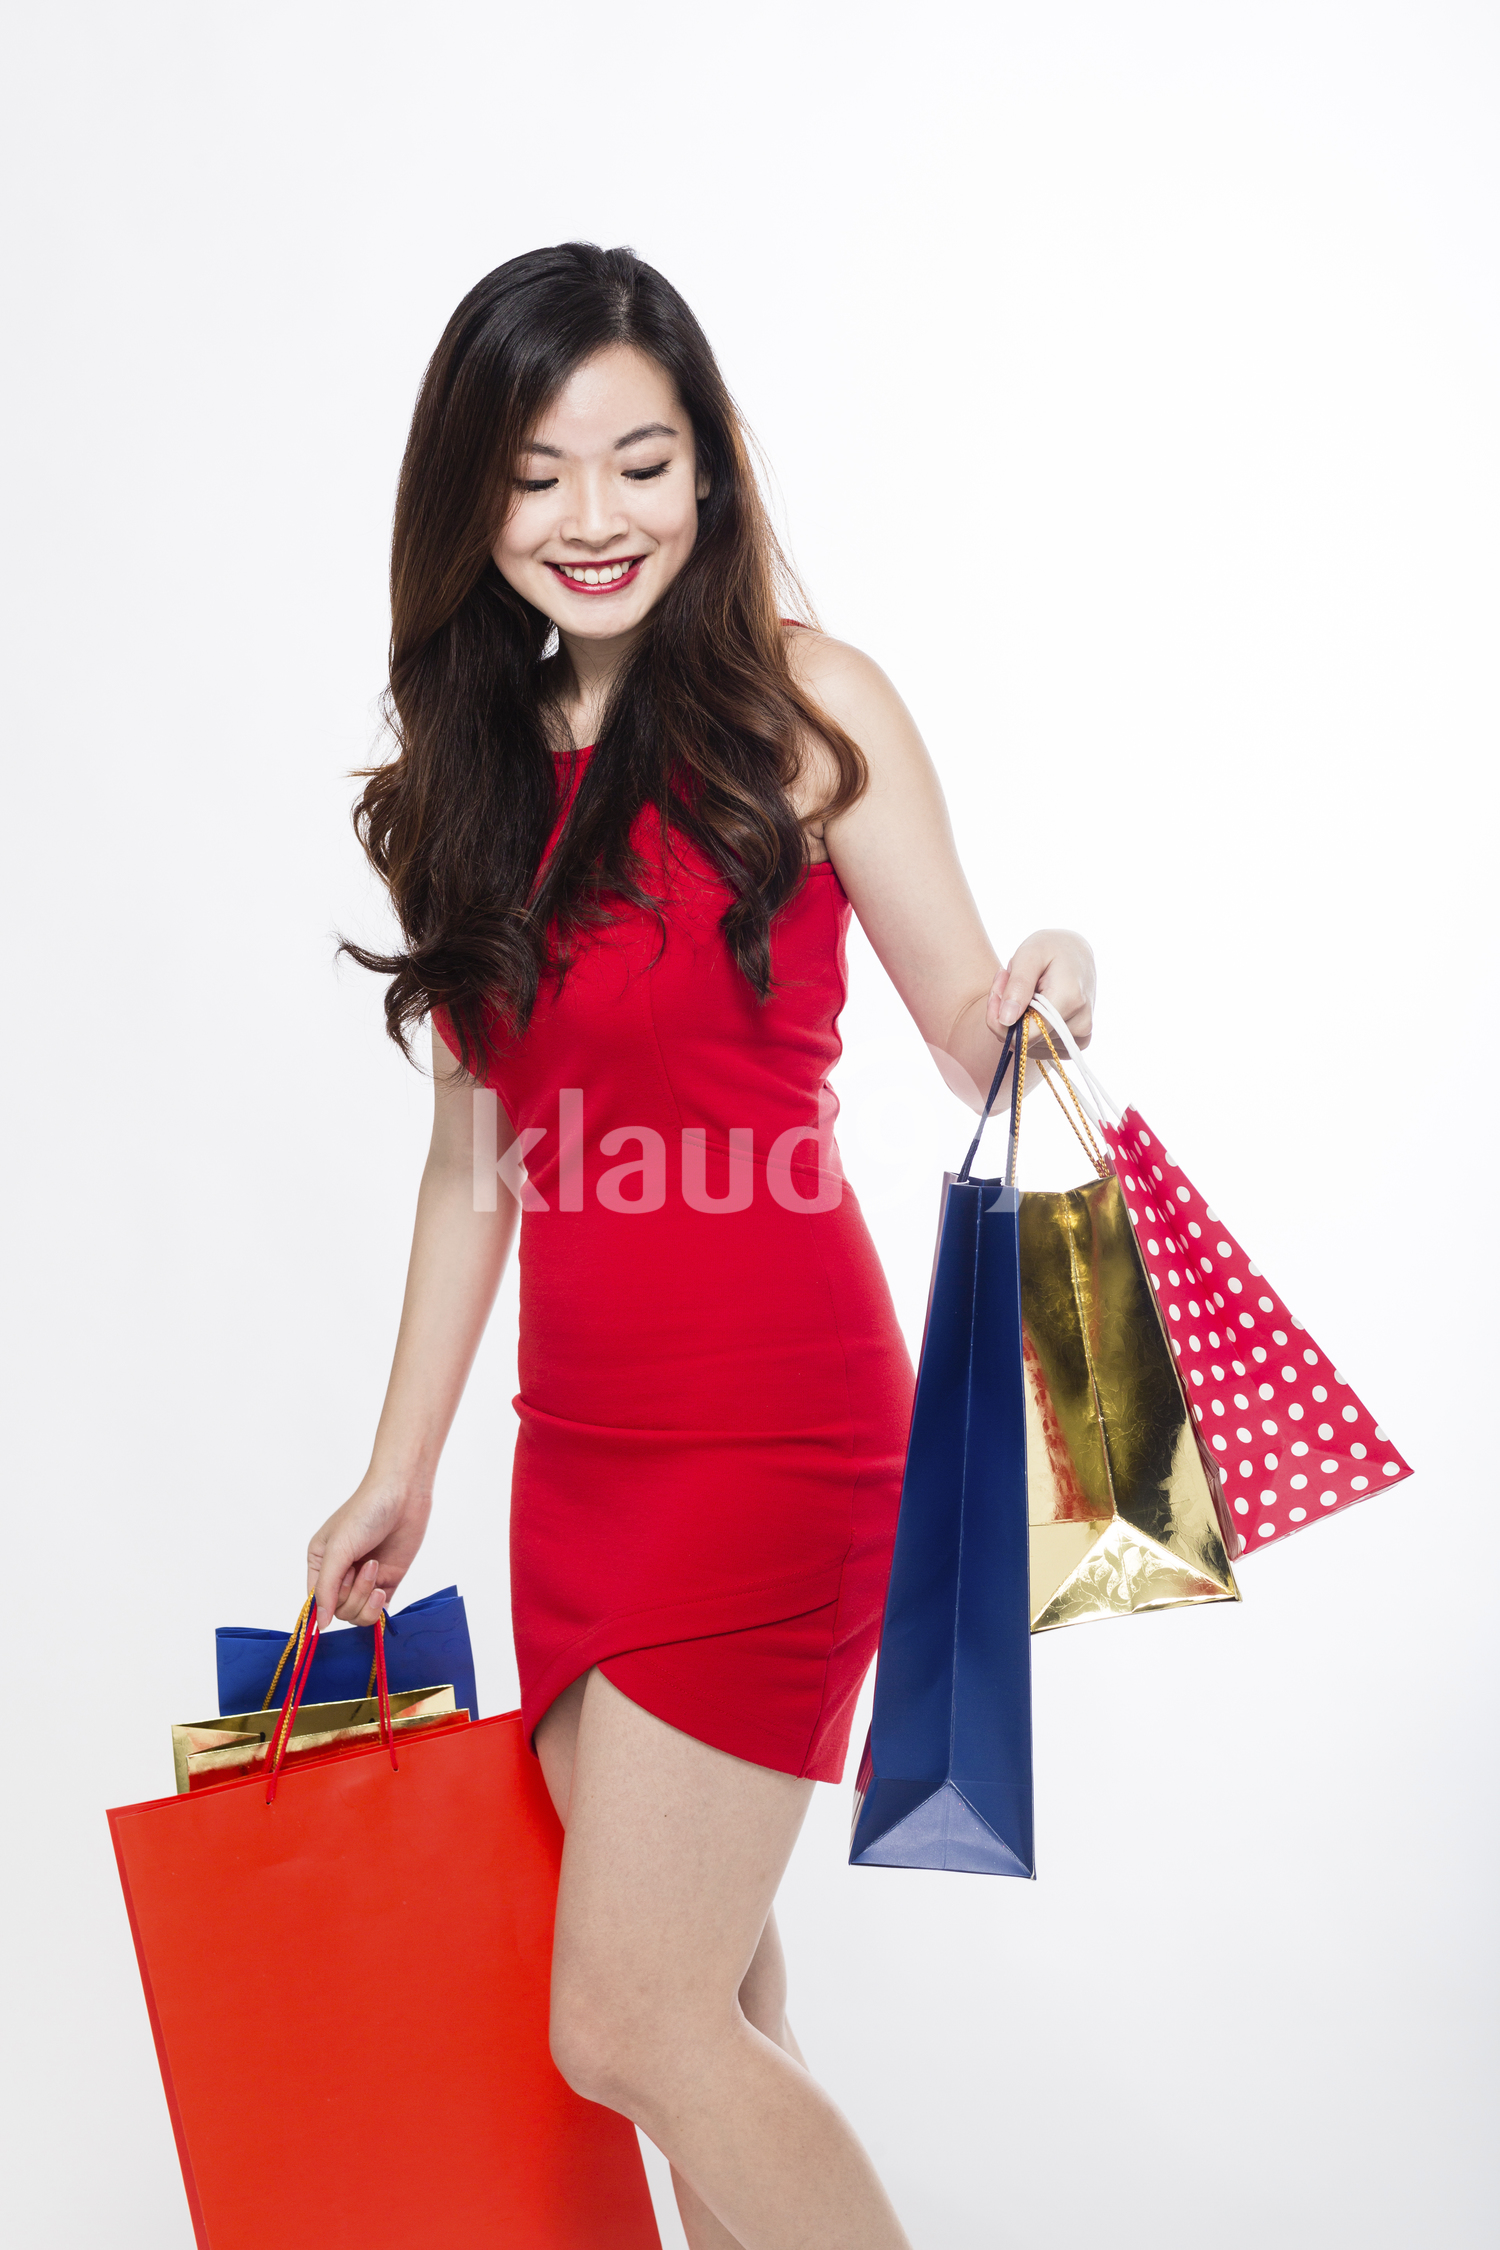 Pan Asian woman with her shopping bags